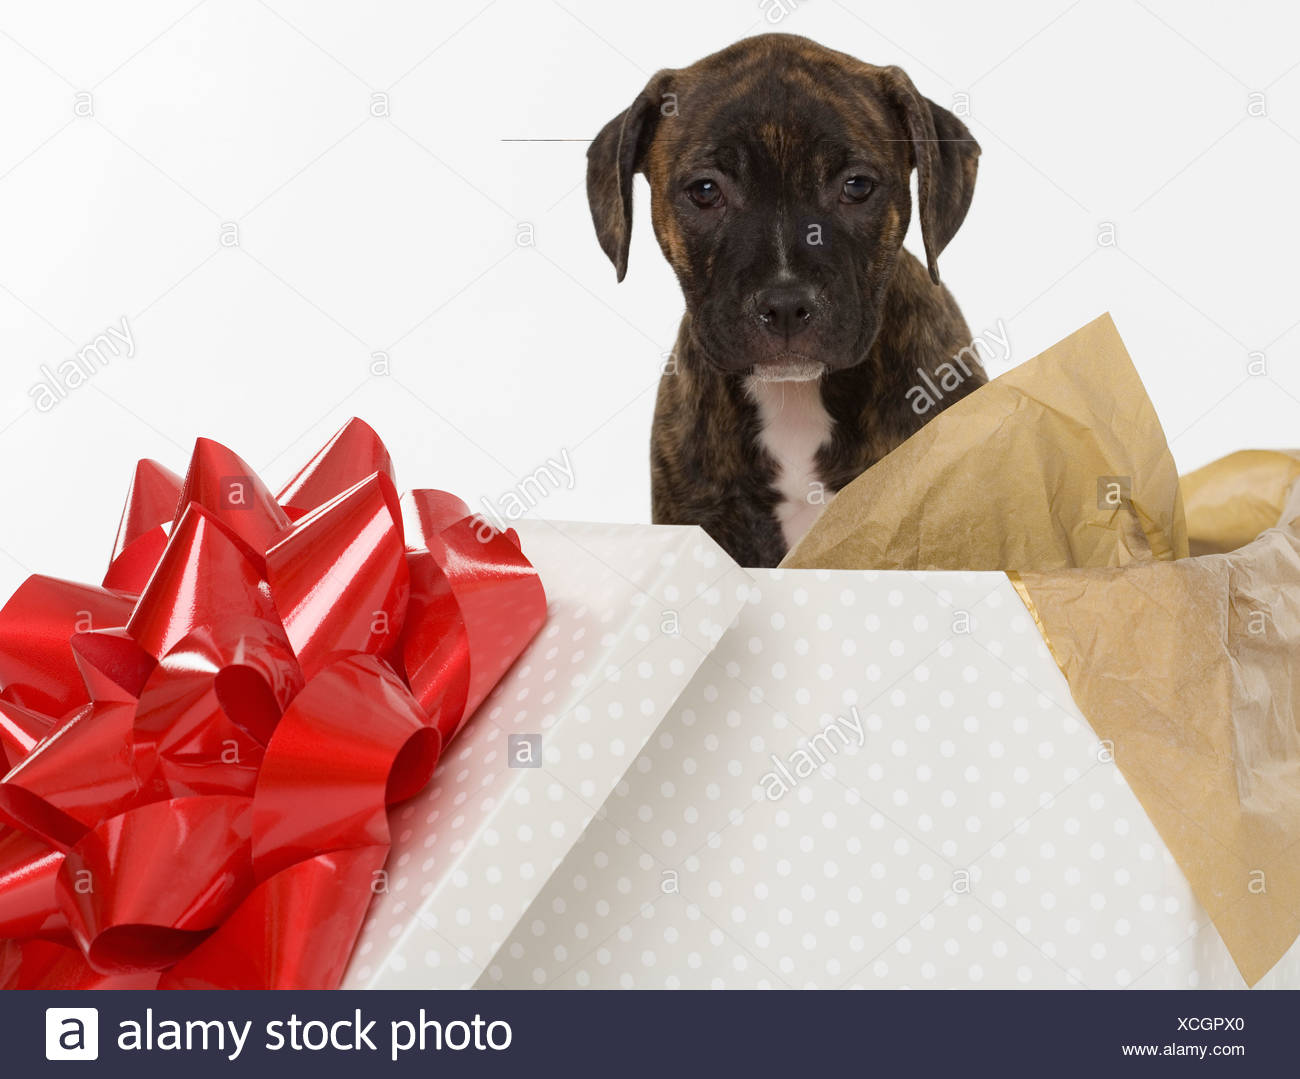 Pitbull Terrier puppy in gift box - Stock Image